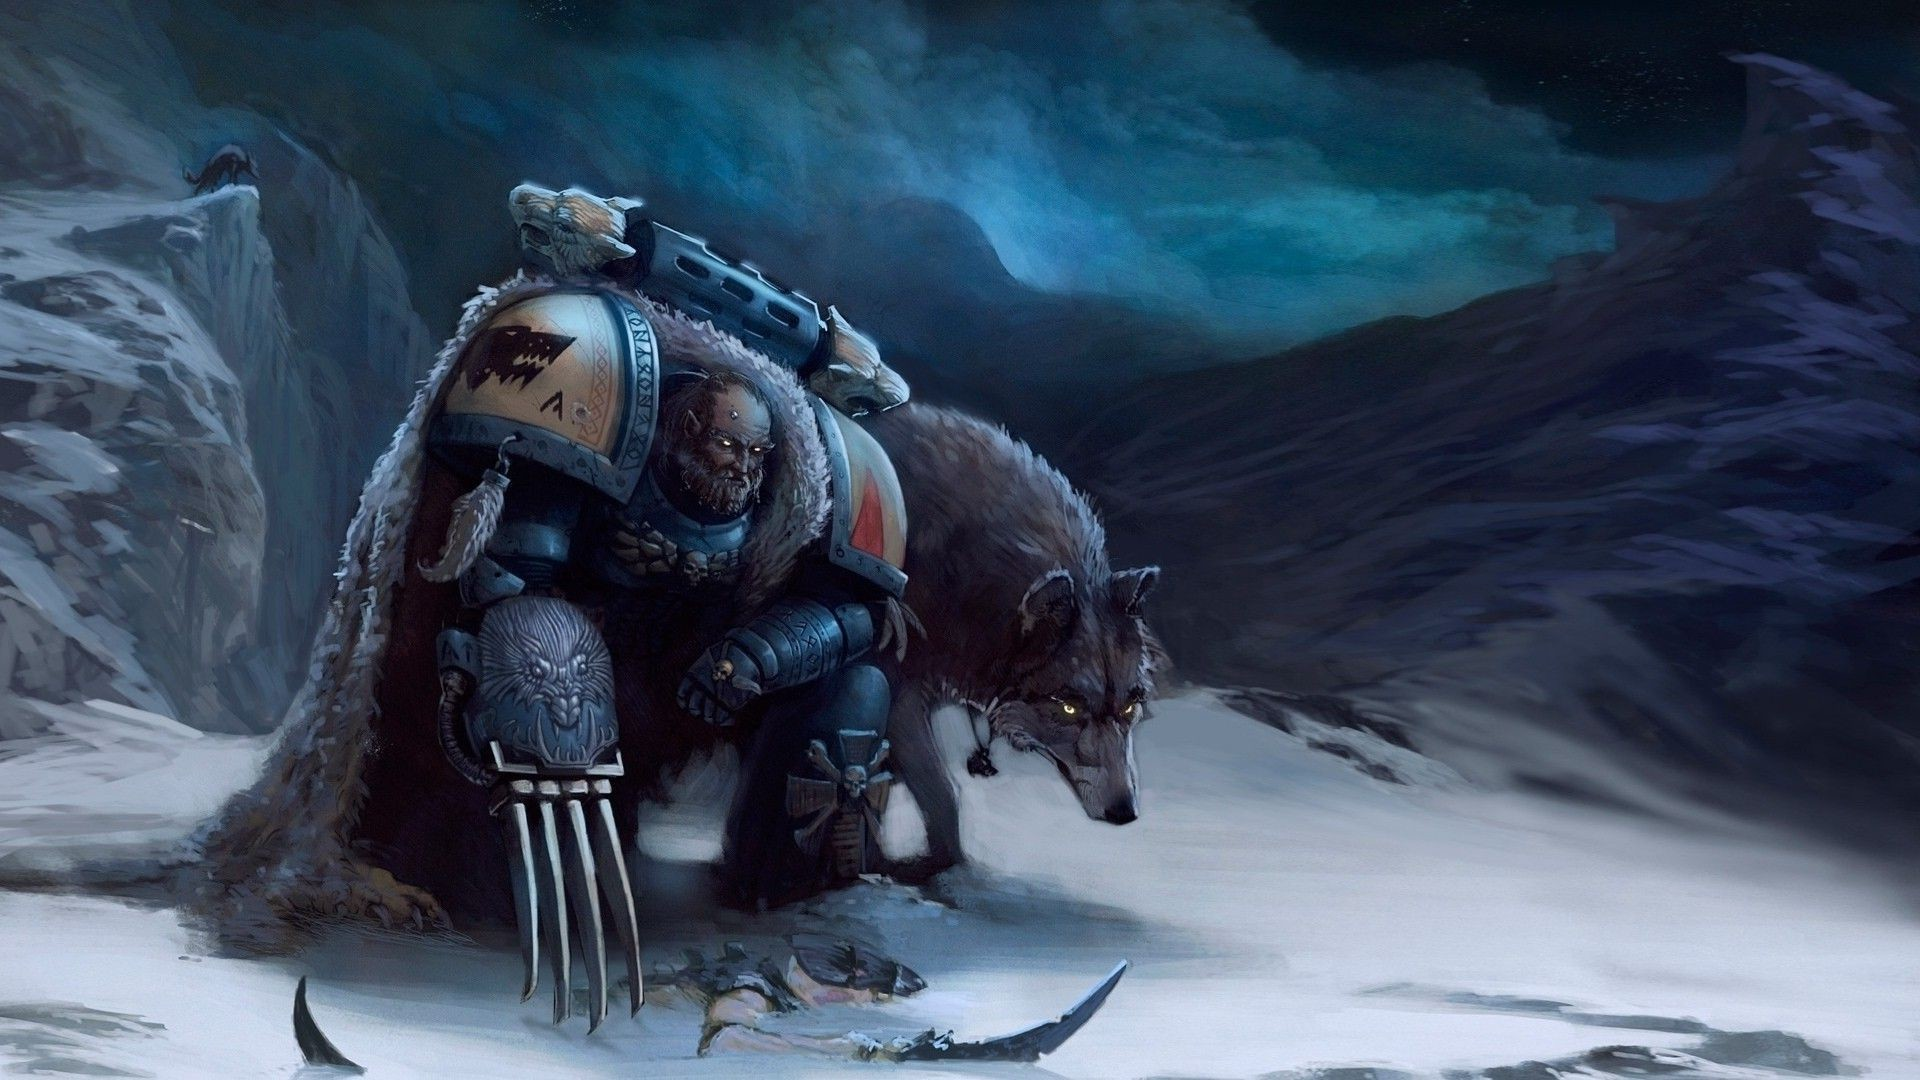 Warhammer K Space Wolves Wallpaper